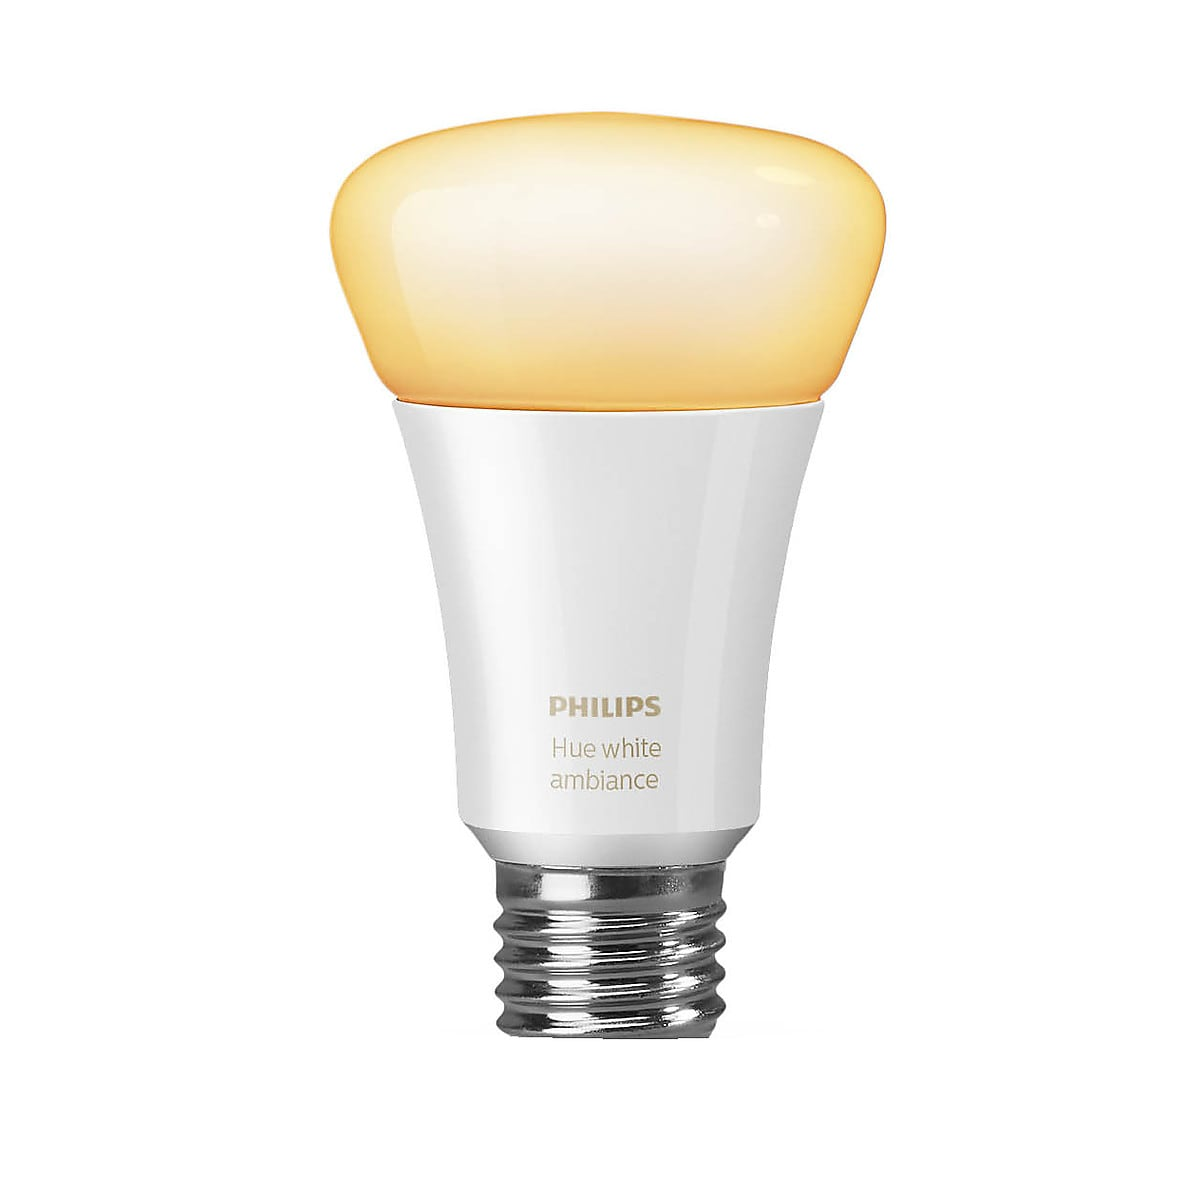 Philips Hue Ambiance LED-pære 9,5 W E27